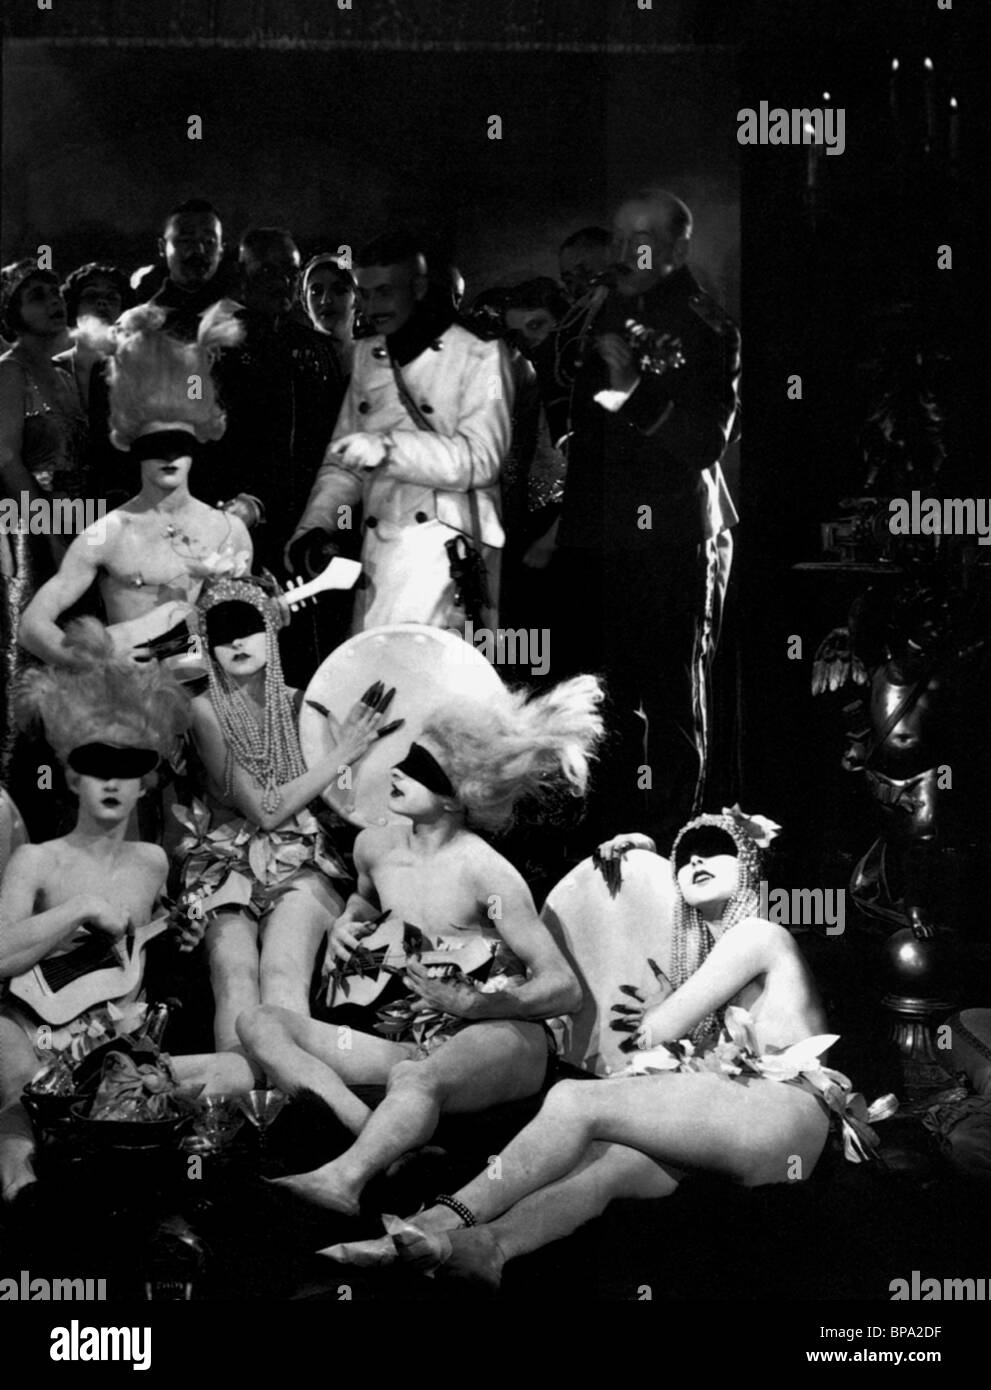 EXOTIC DANCERS THE MERRY WIDOW (1925) - Stock Image